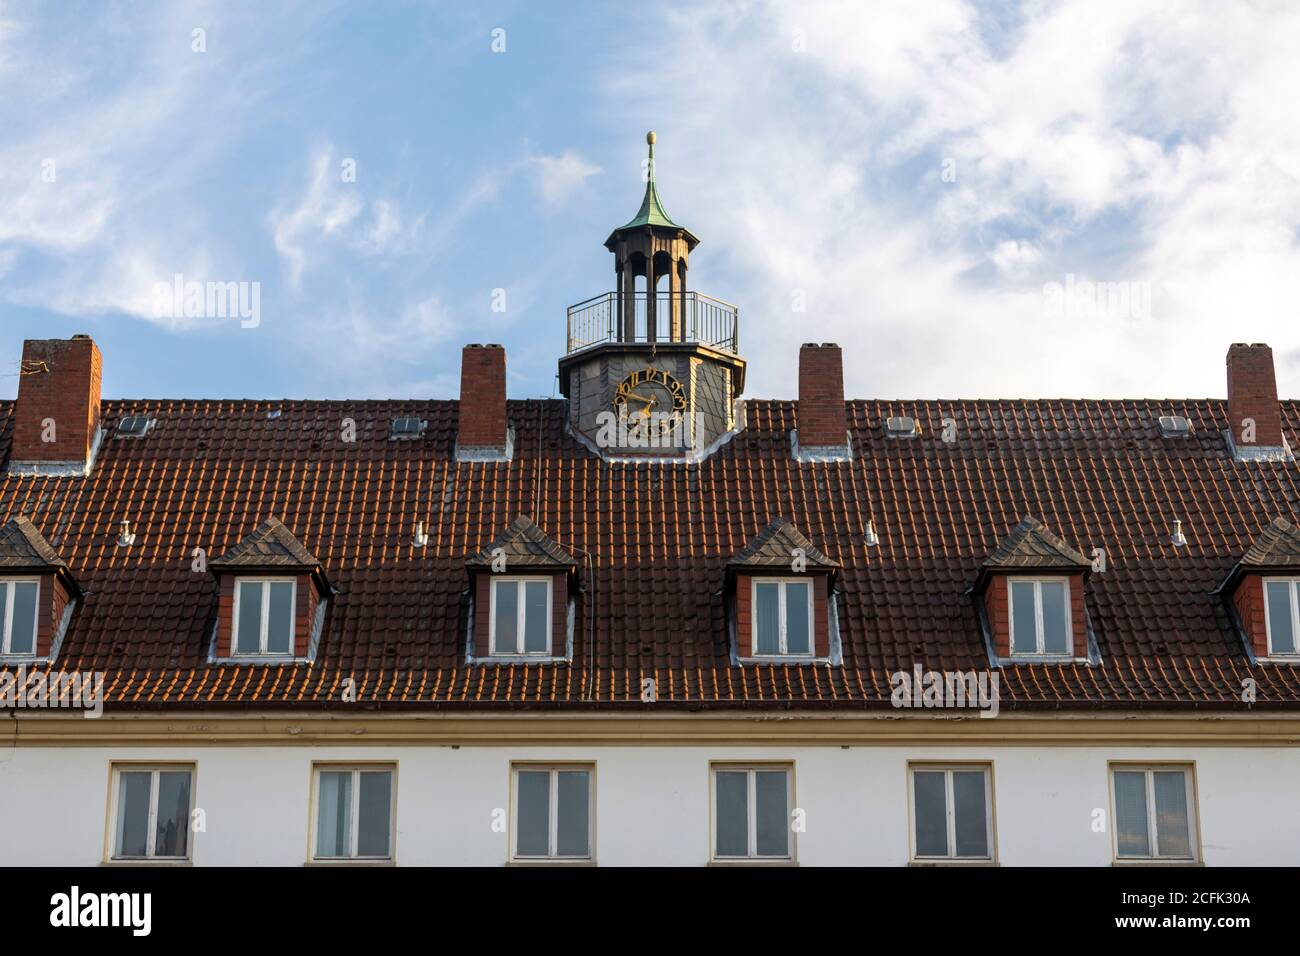 Rooftop and clockl tower of historical school building in Wolfsburg Stock Photo